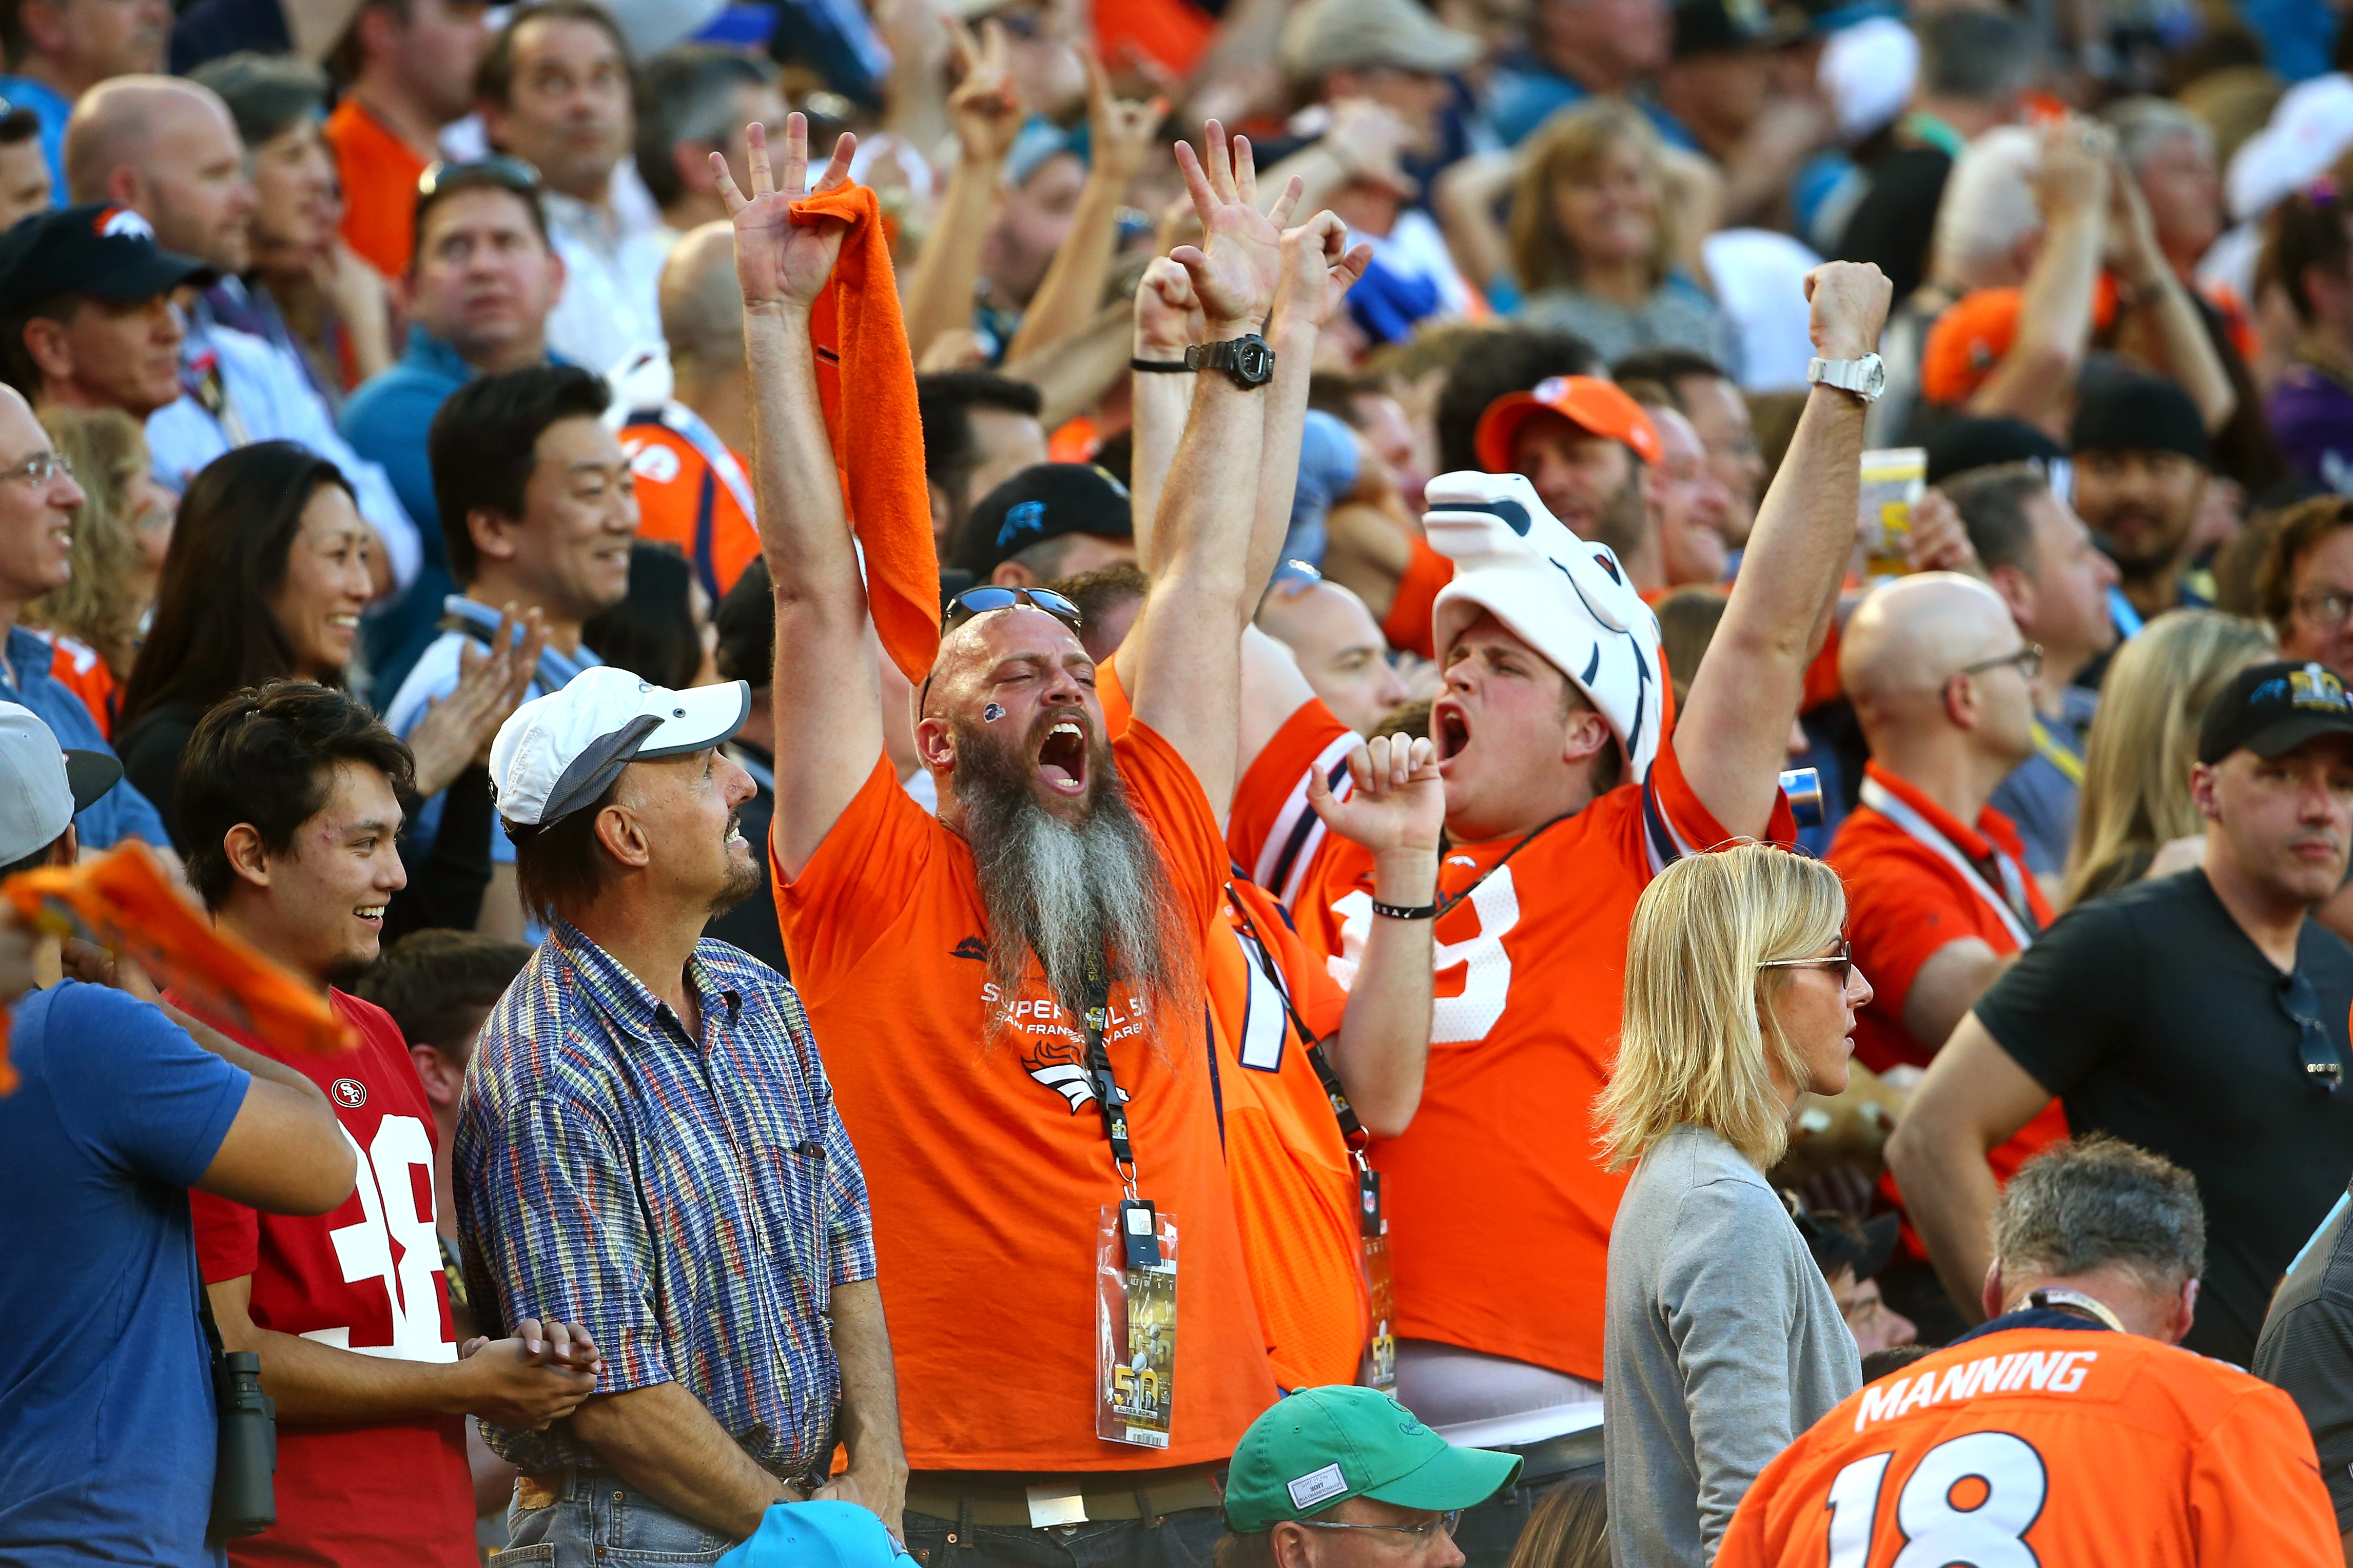 Fans of the Denver Broncos cheer in the first half against the Carolina Panthers during Super Bowl 50 at Levi's Stadium on February 7, 2016 in Santa Clara, California. (Photo by Maddie Meyer/Getty Images)